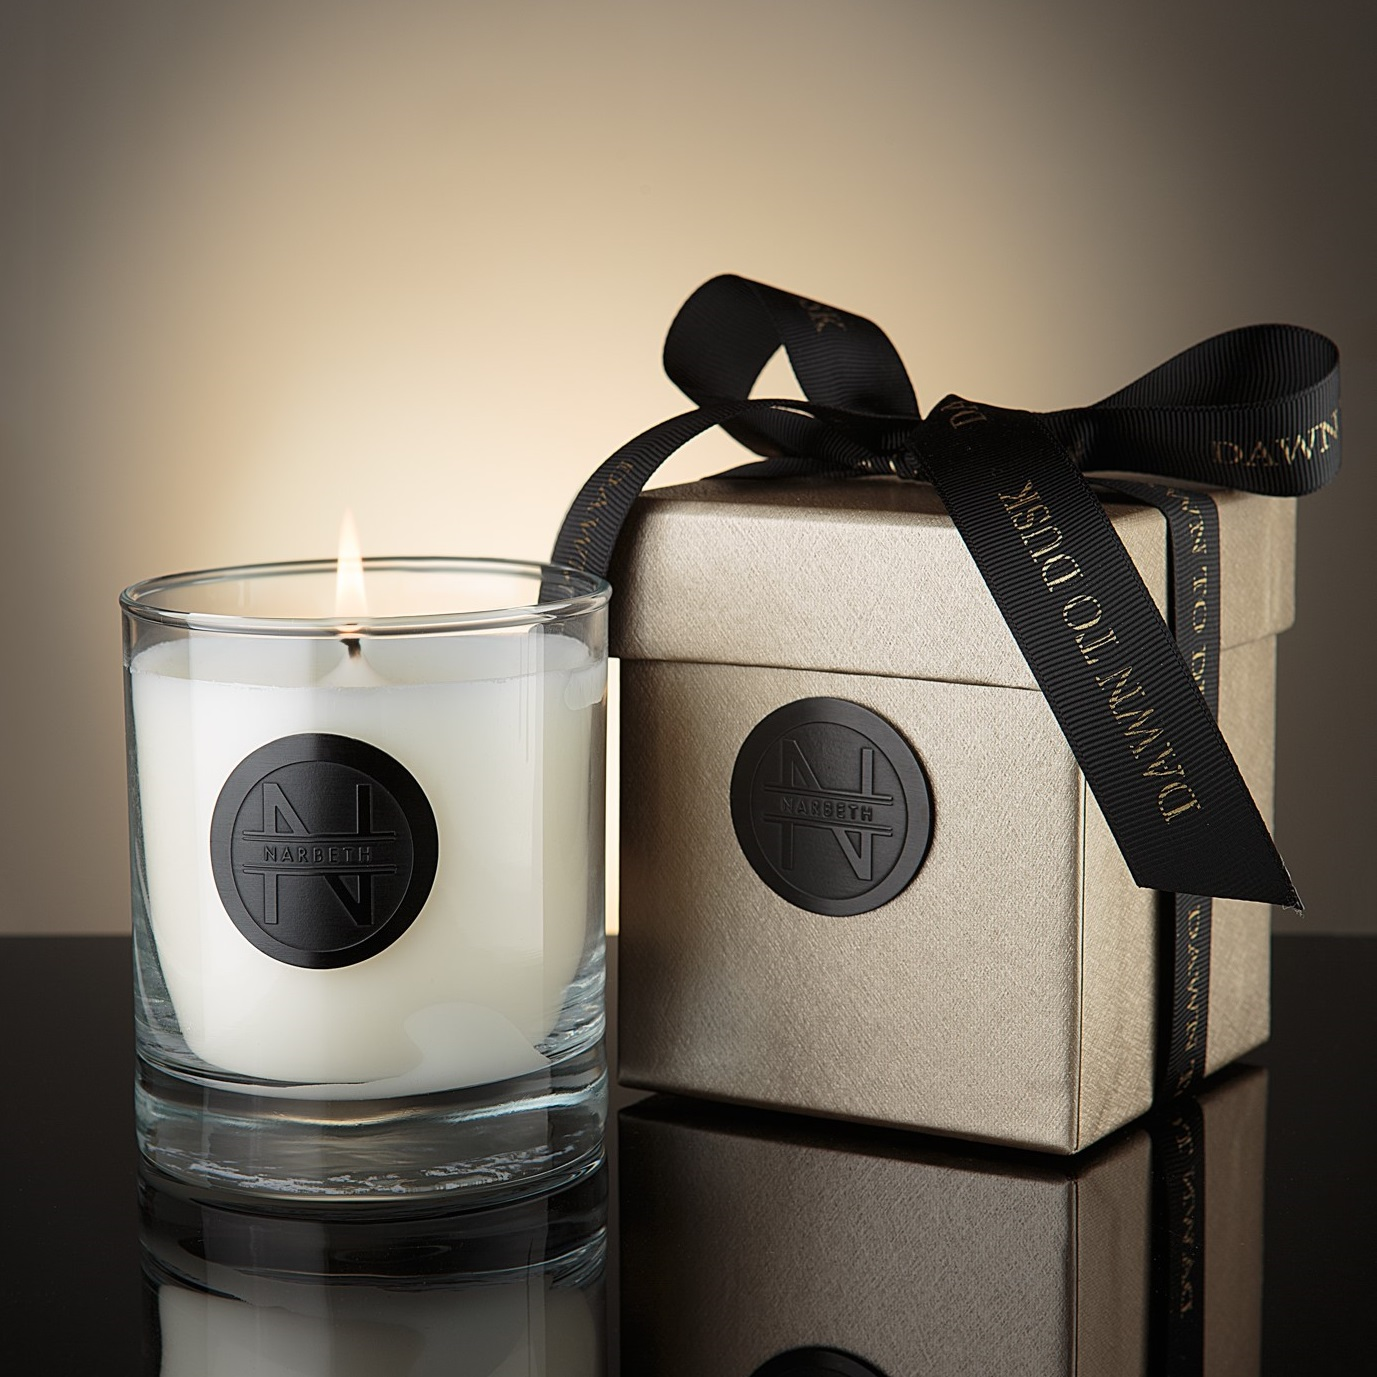 Narbeth Scented Candles